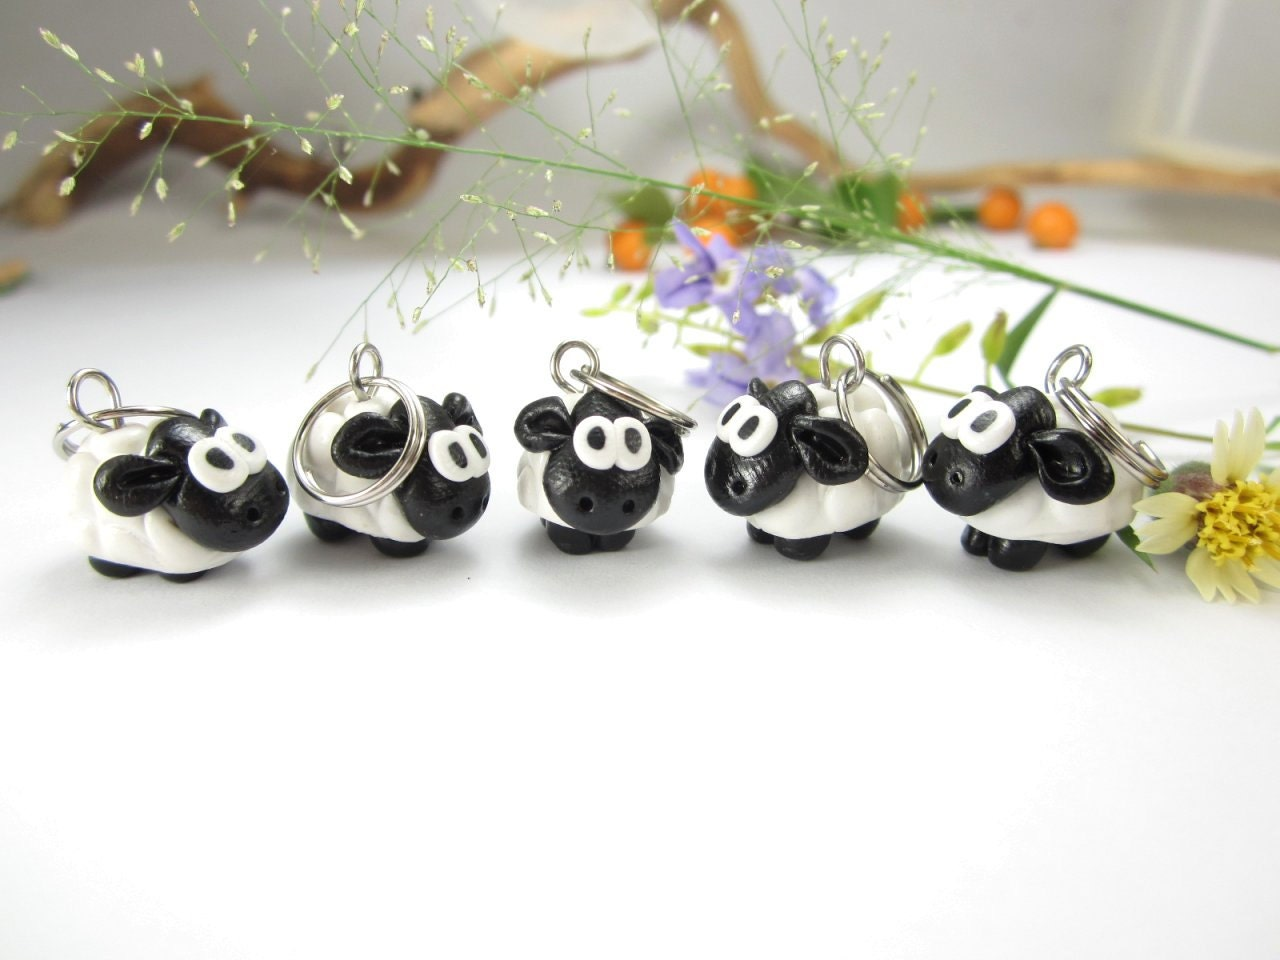 Cute Sheep Stitch Markers Set of 5 polymer clay by beadpassion